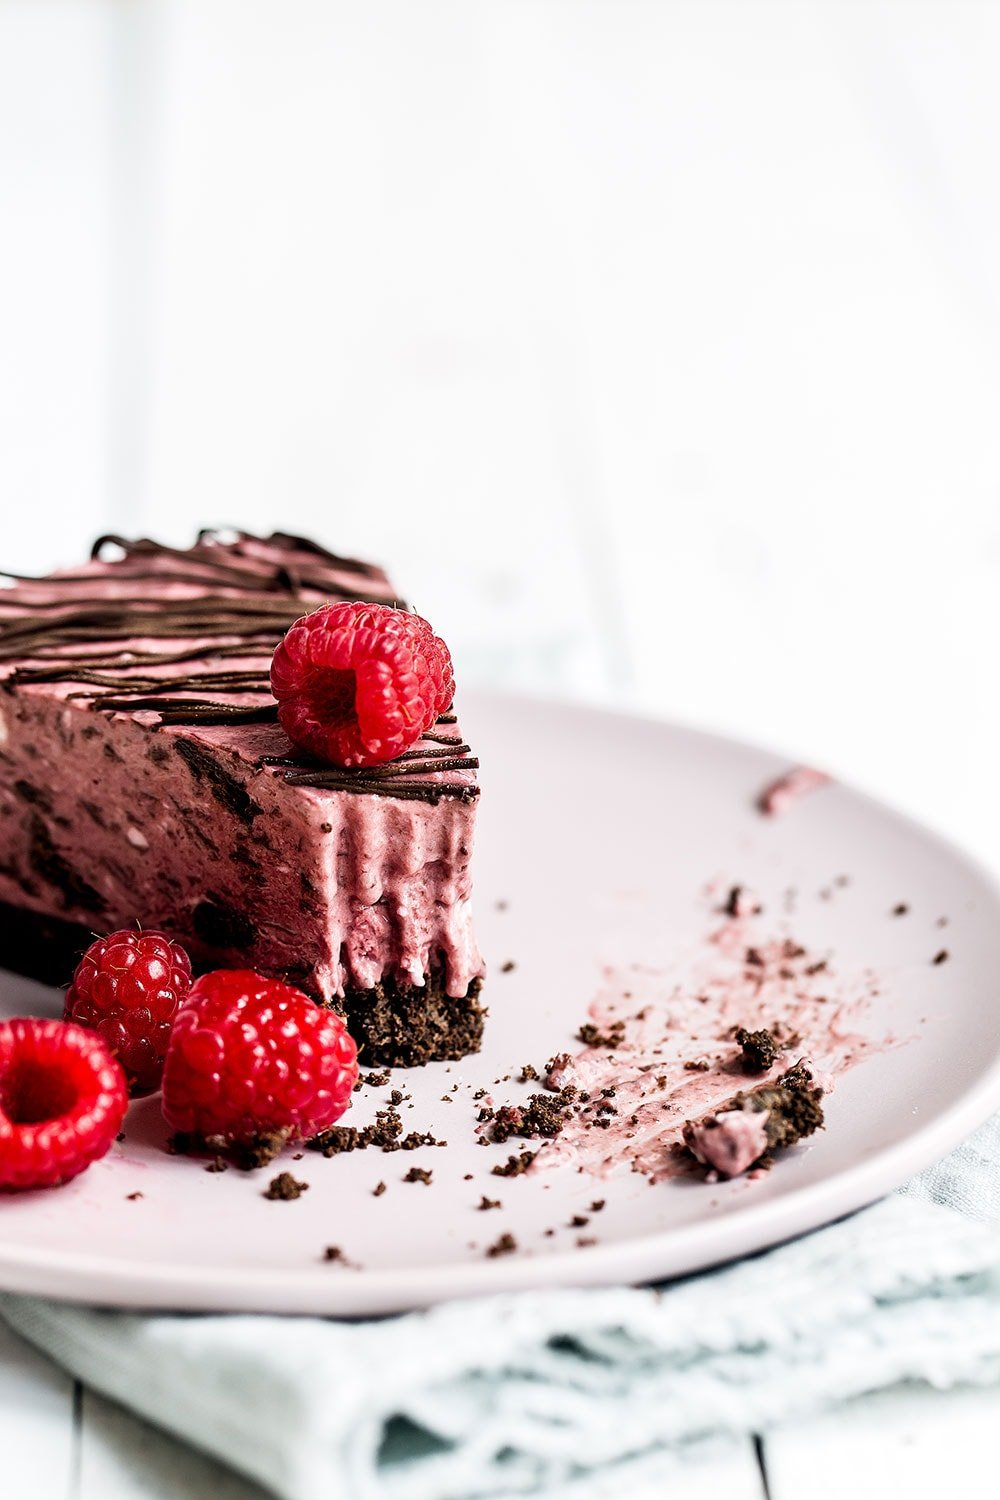 No Bake Frozen Chocolate Raspberry Pie features a chocolate graham cracker crust, creamy chocolate raspberry filling, and is topped with more chocolate! Perfect summer recipe that you can make ahead of time! No ice cream machine required.